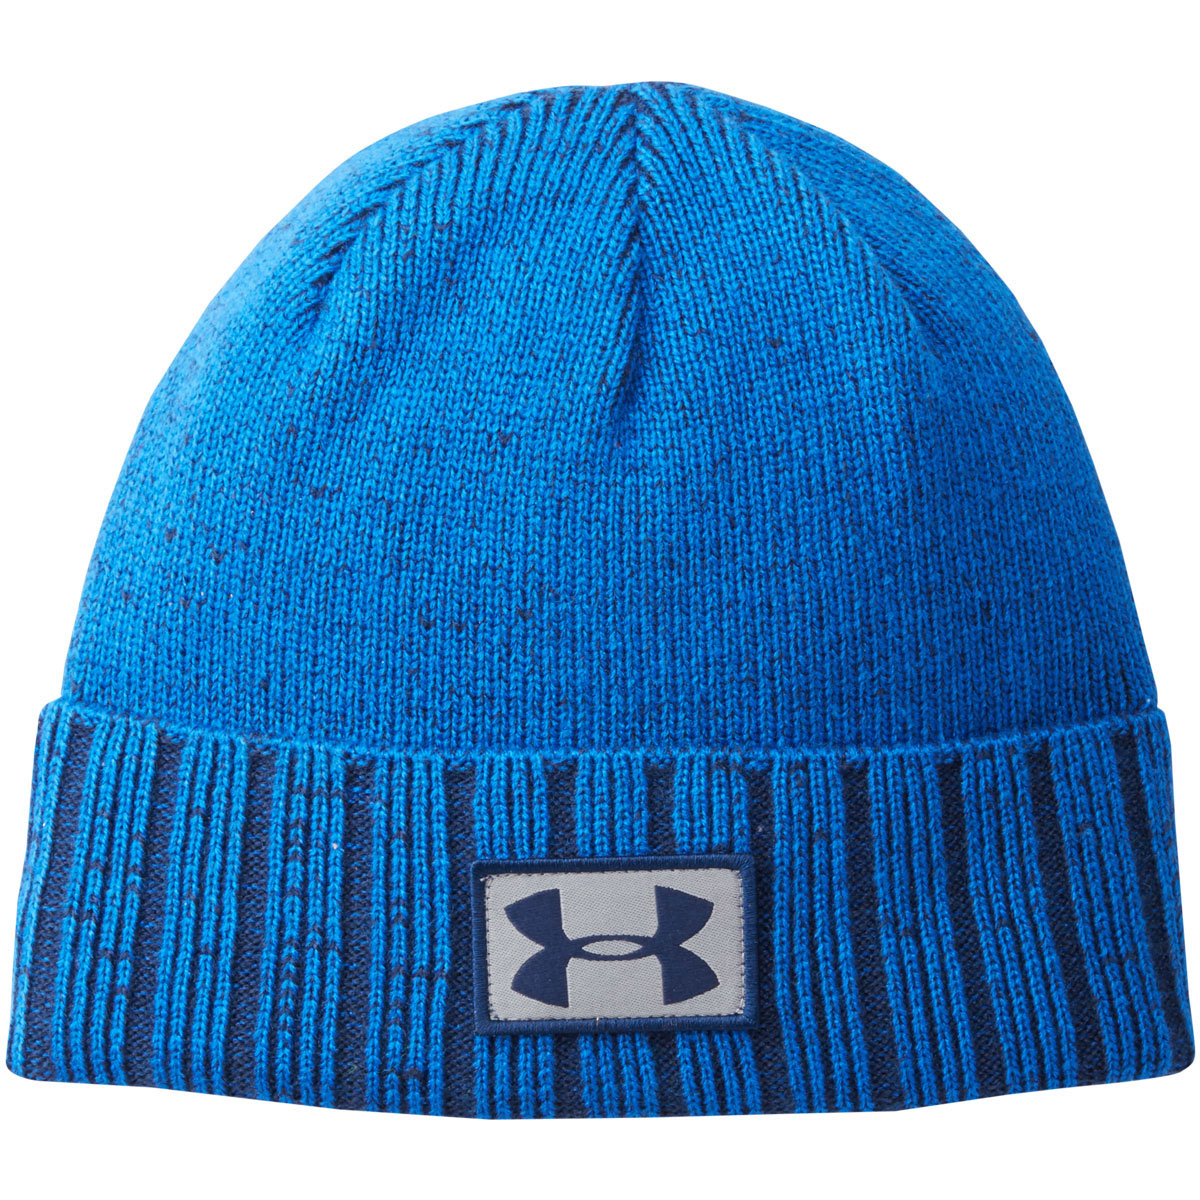 9fc8a2d1741a5 Cheap under armour mens winter hats Buy Online  OFF66% Discounted